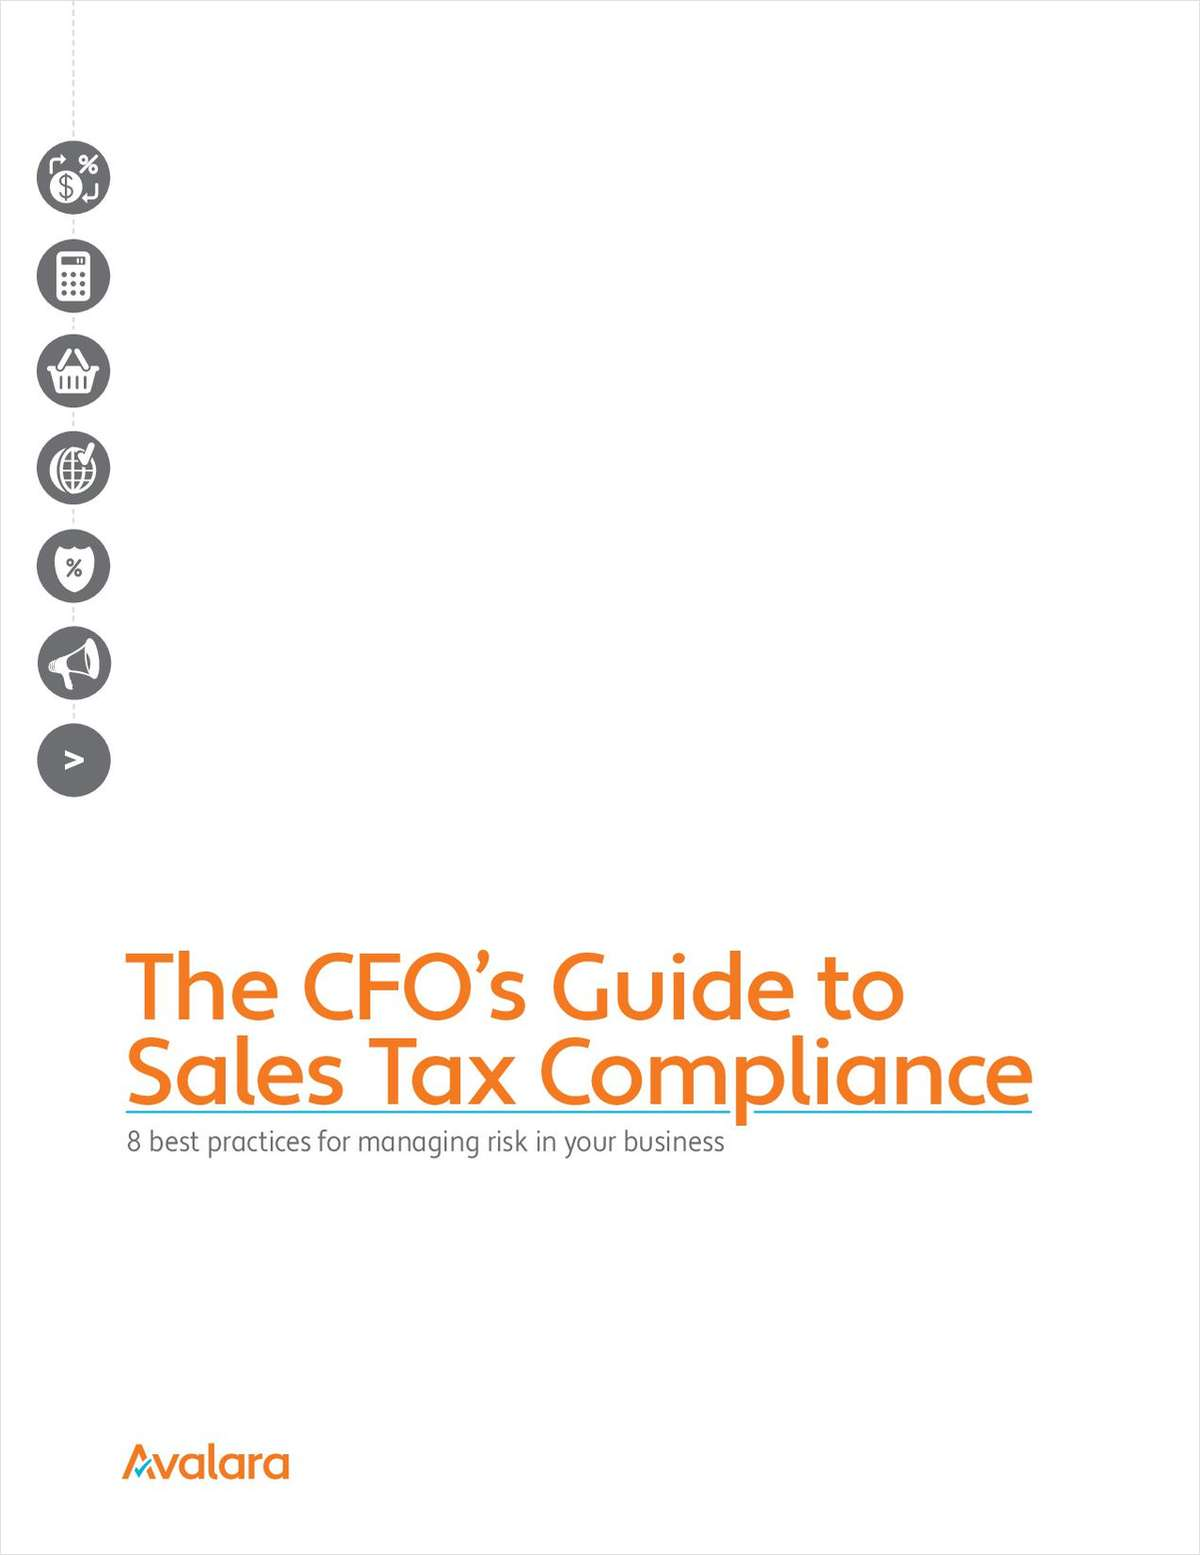 The CFO's Guide to Sales Tax Compliance